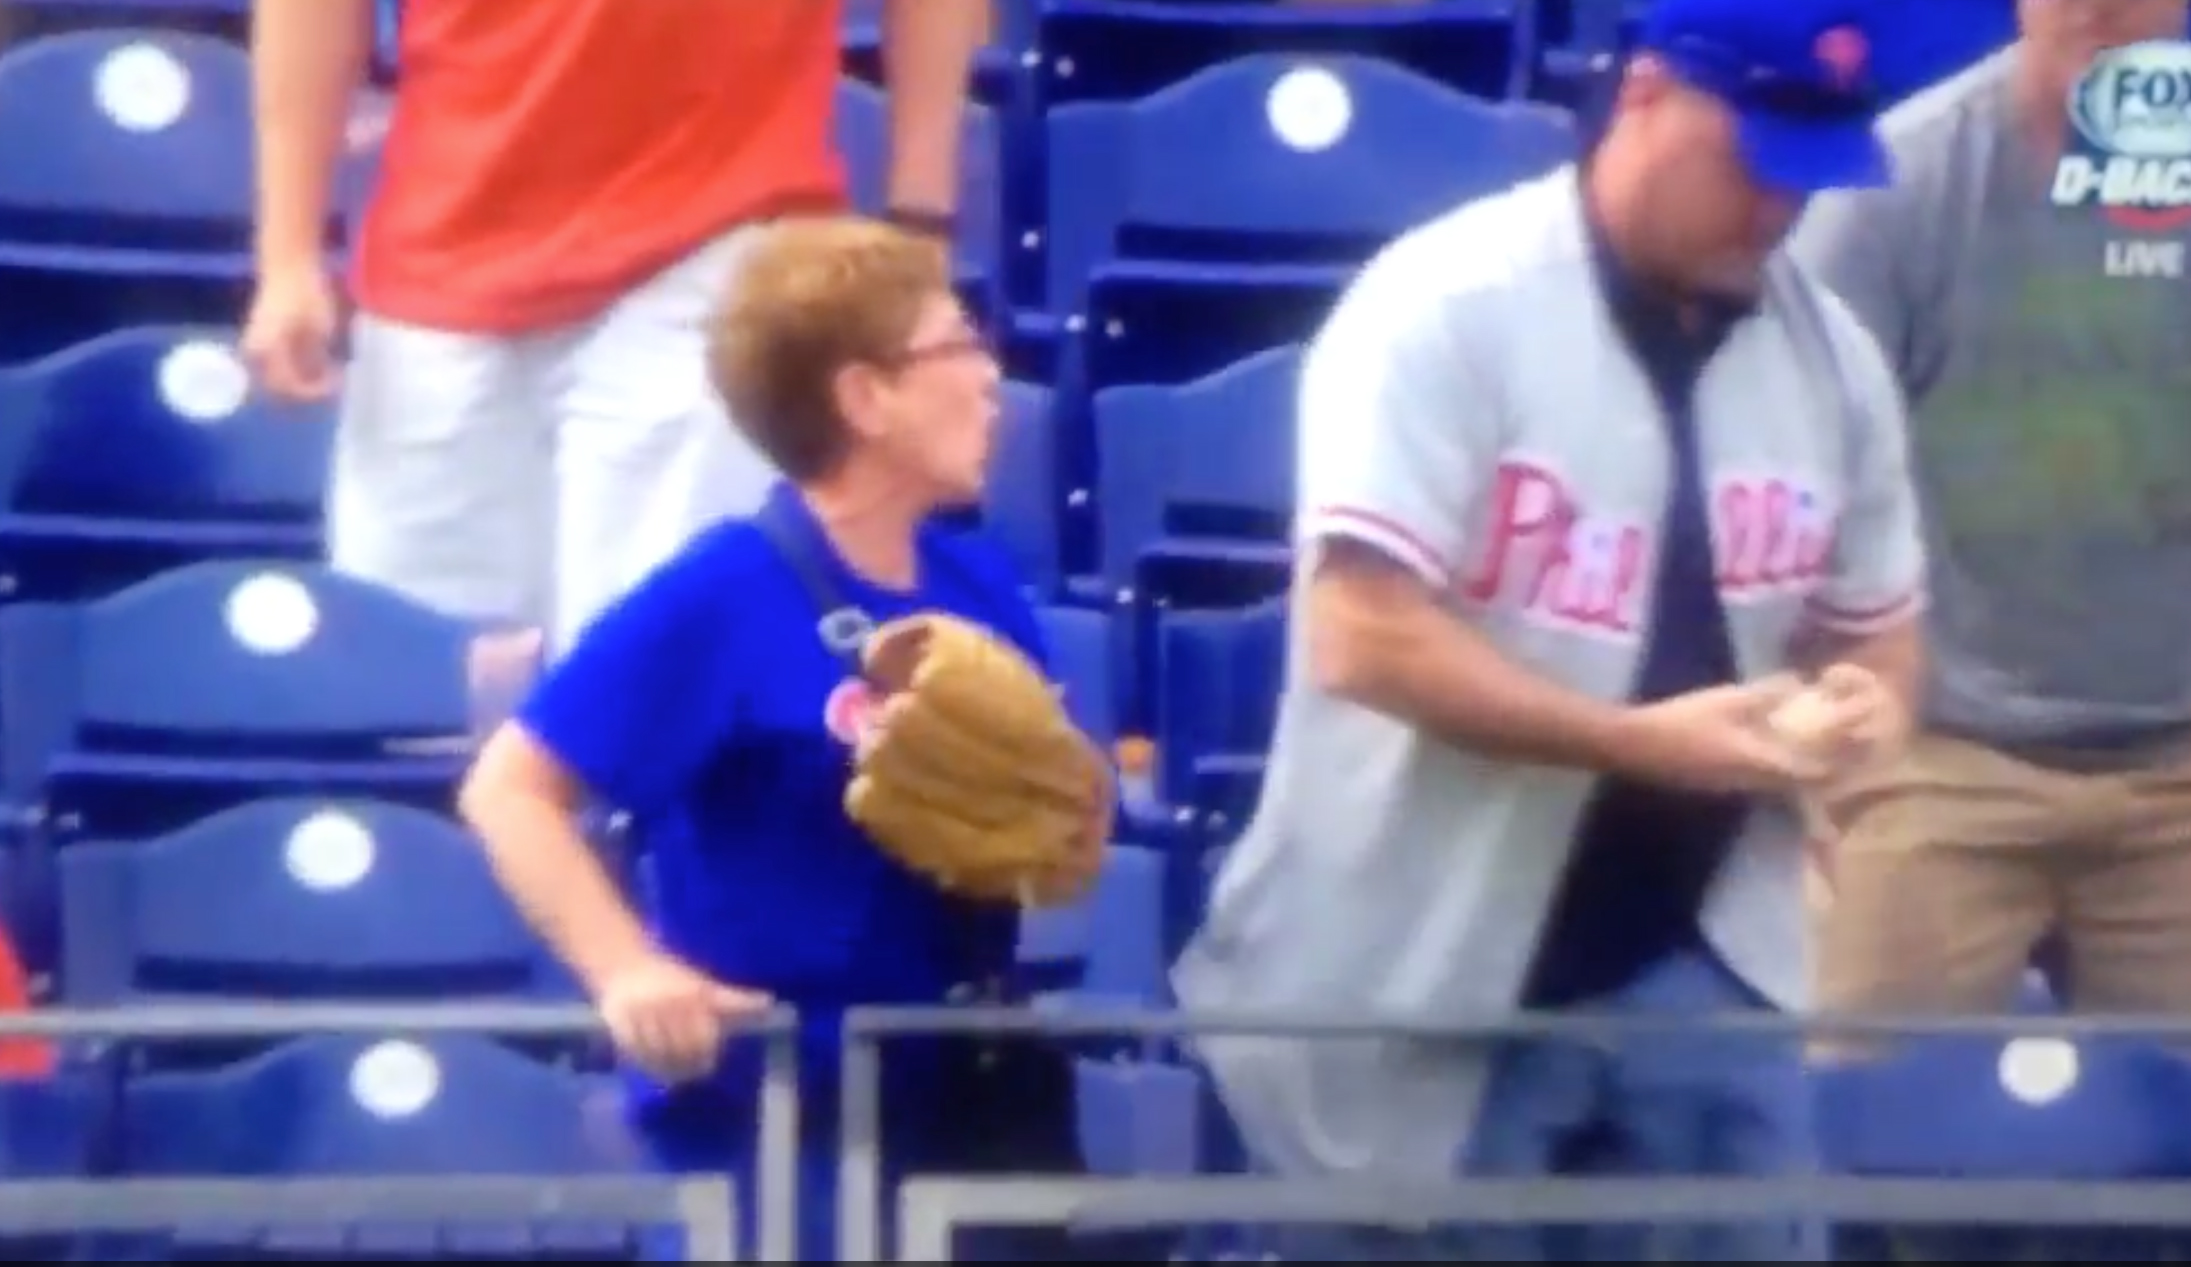 Watch a typical Phillies fan ruin baseball for a nice old lady.